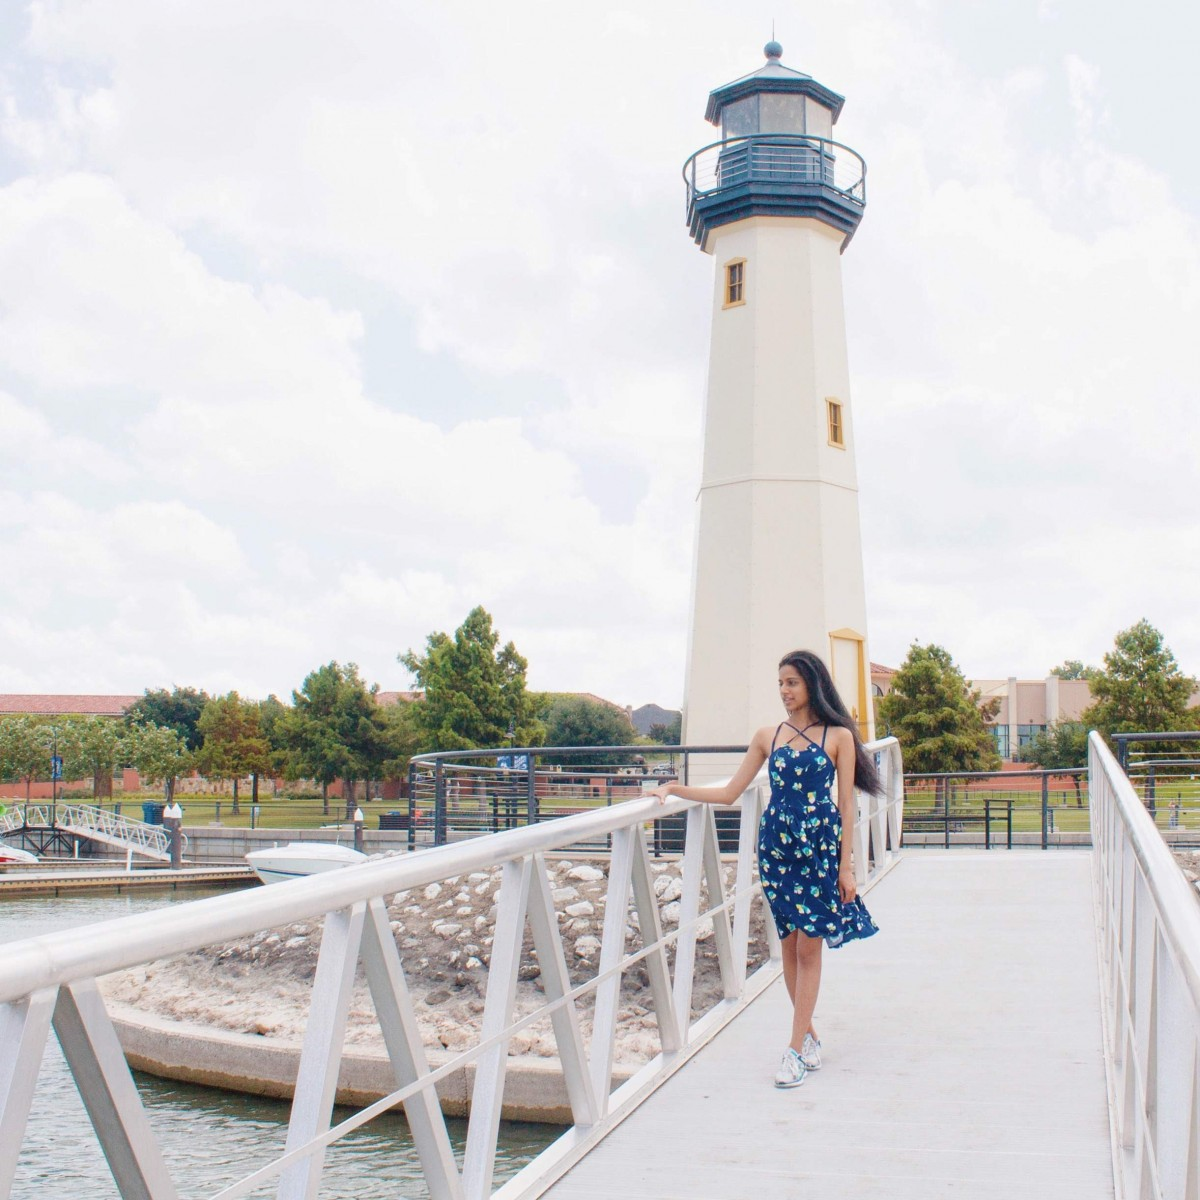 Guide To Visiting Rockwall Harbor: Where To Eat, Shop, and